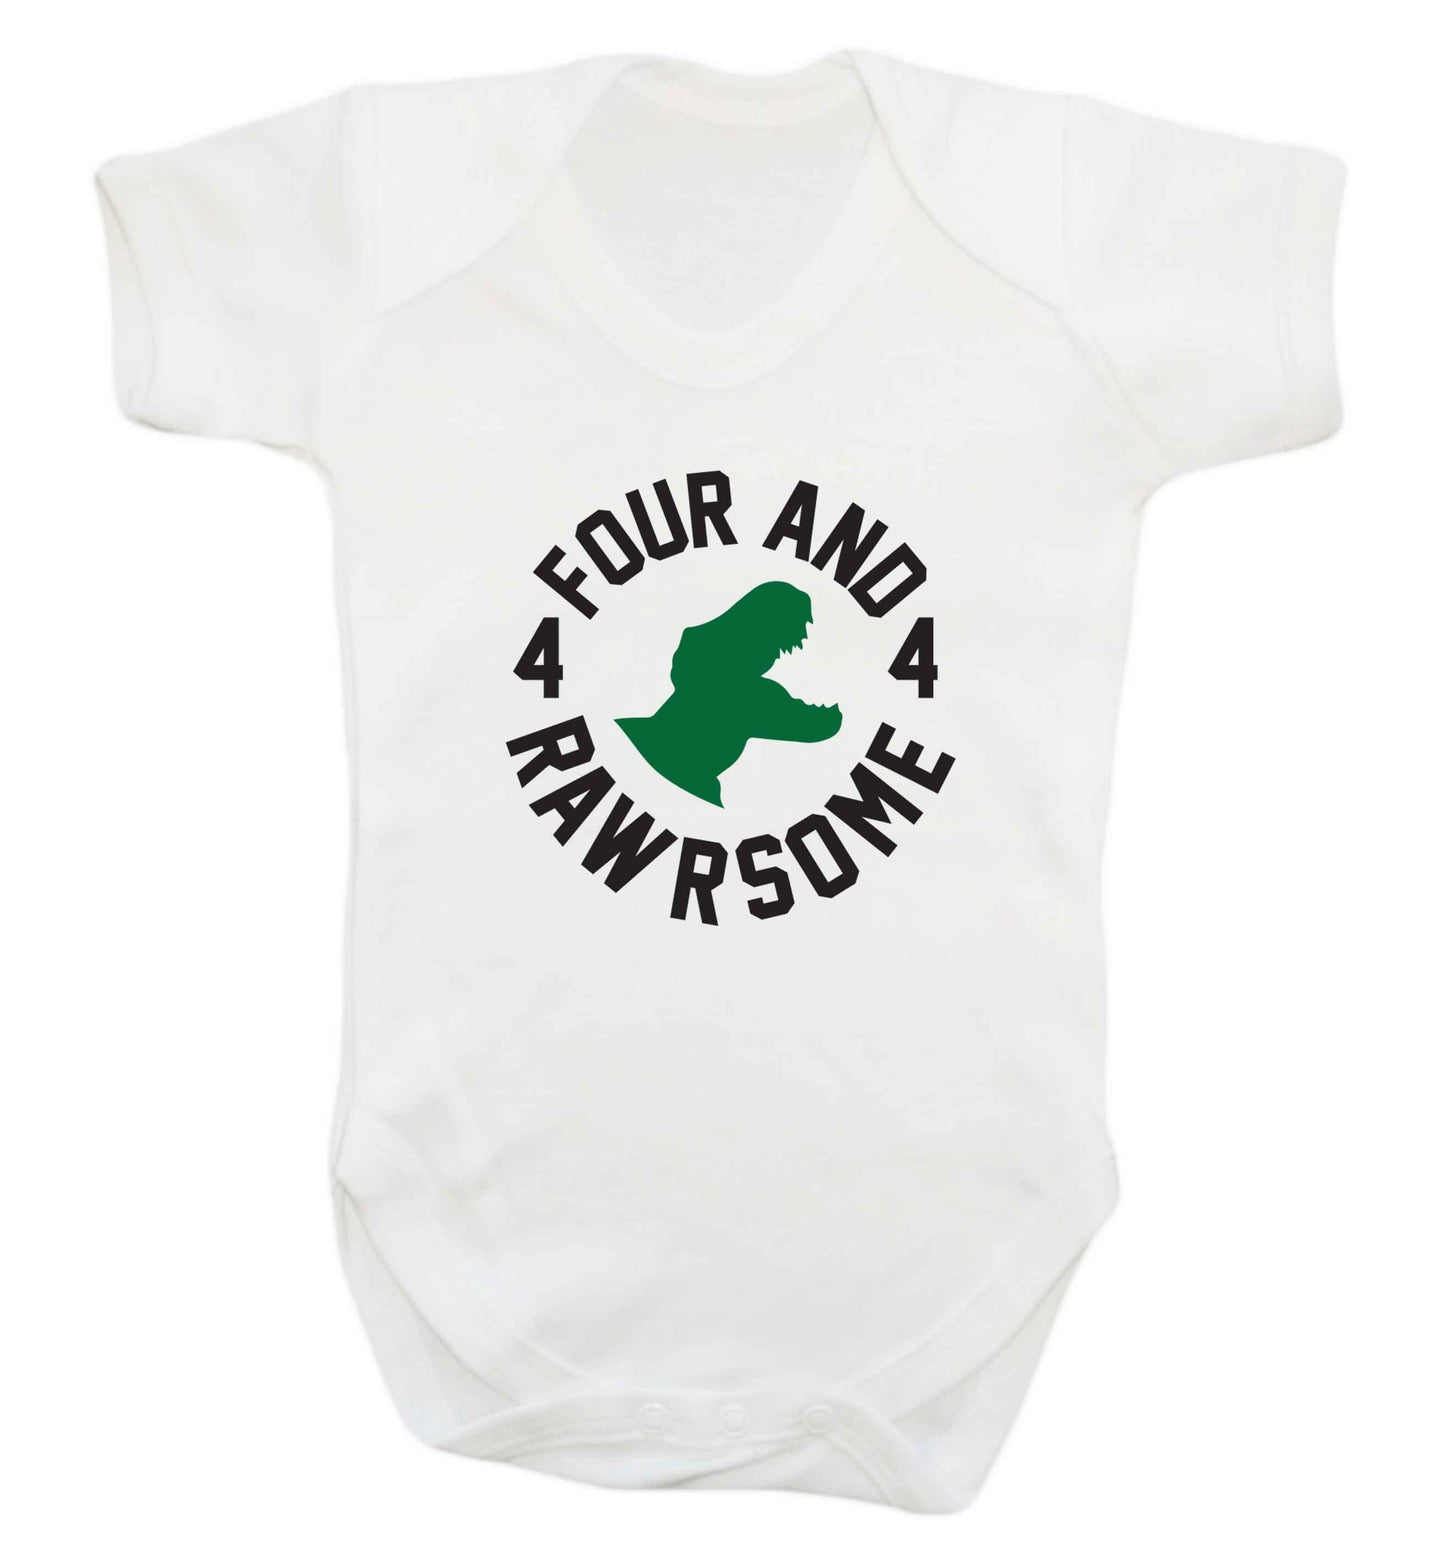 Four and rawrsome baby vest white 18-24 months